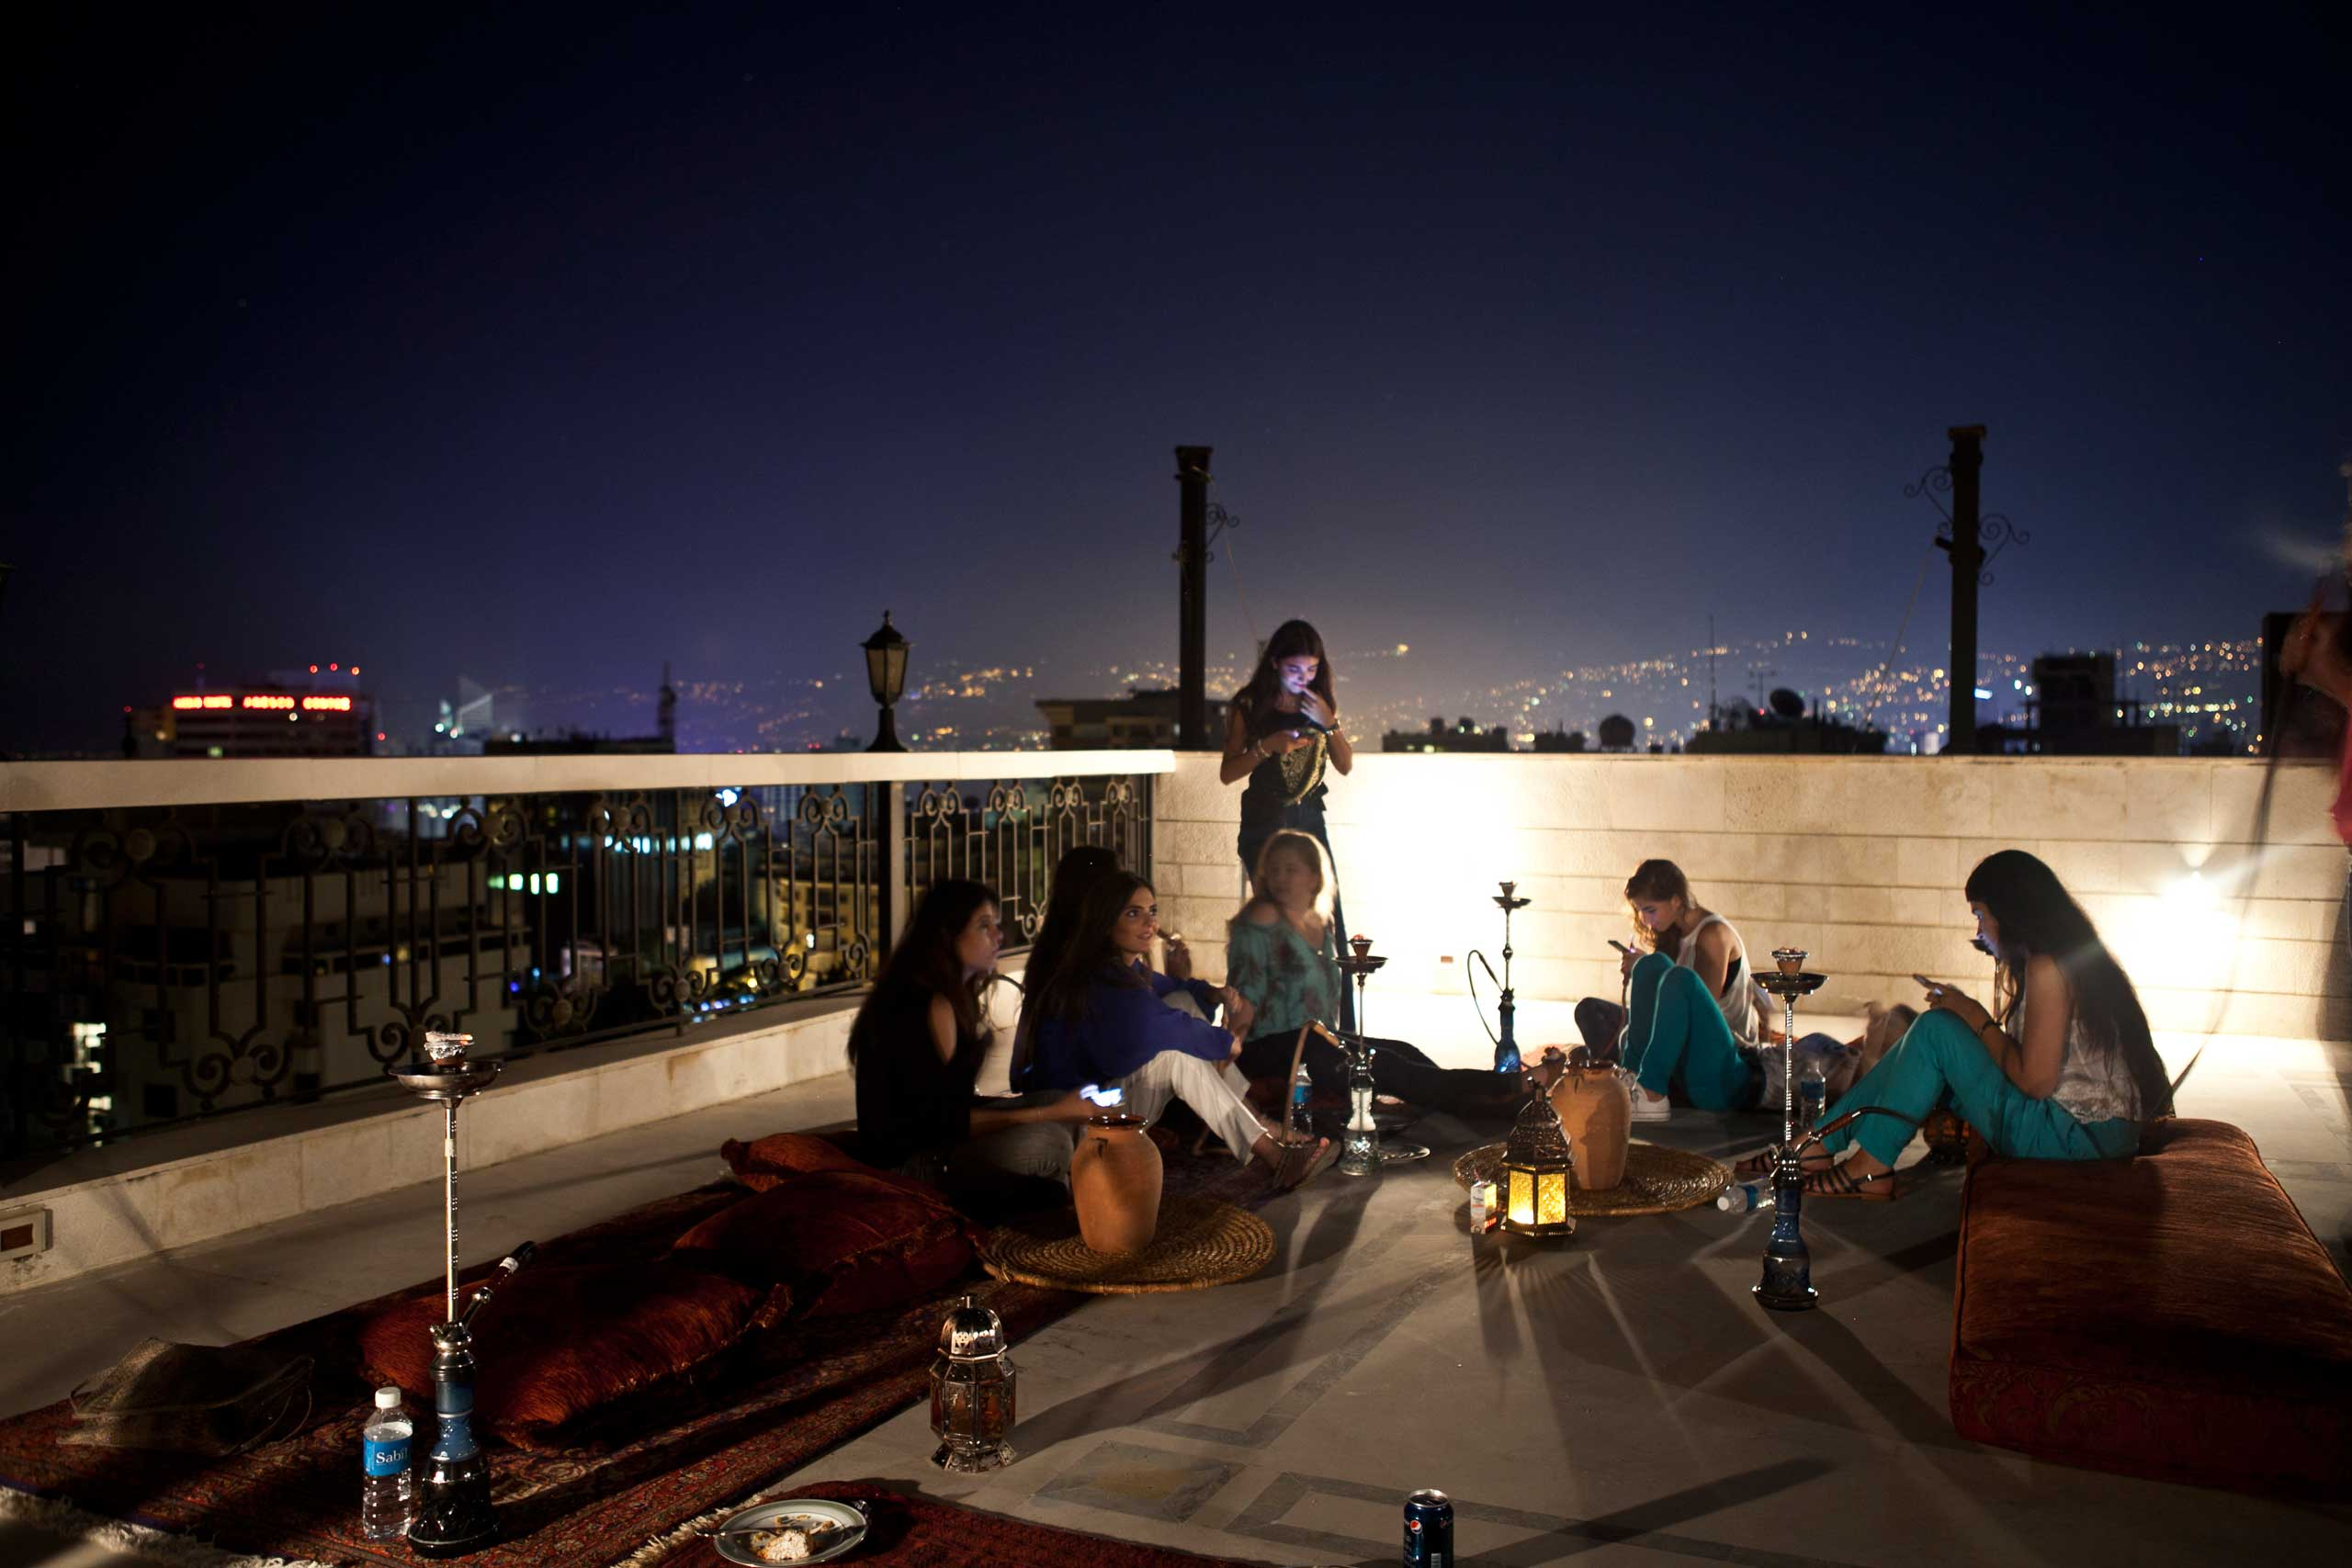 Lebanese teenagers socialize in Ramadan, on a residential rooftop before the sun comes up and they need to fast.